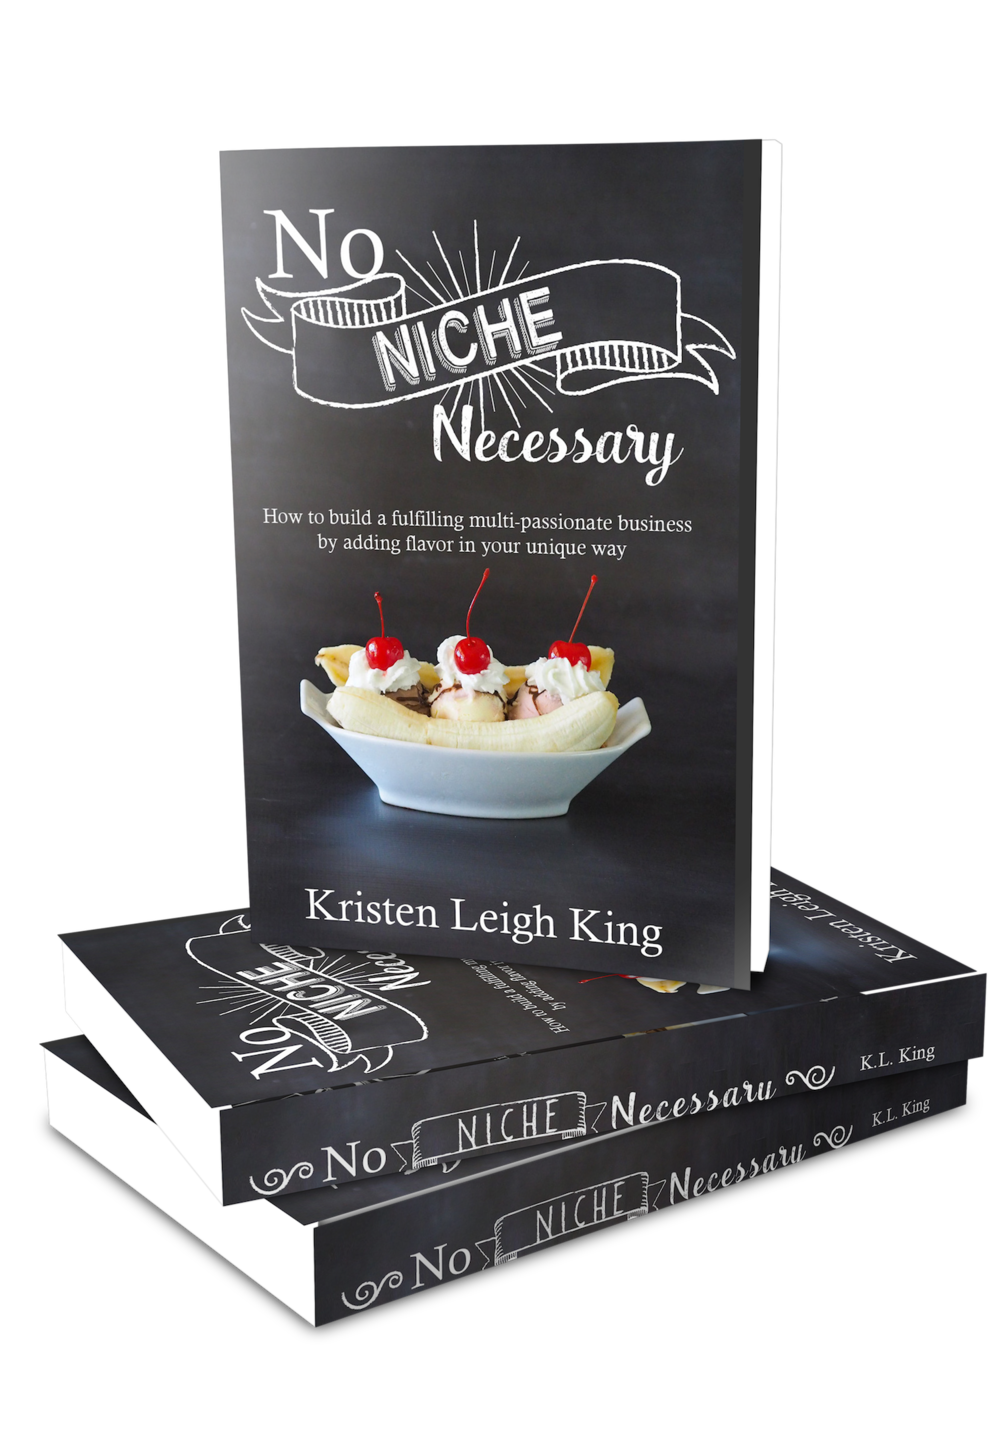 No Niche Necessary book for building a fulfilling multi-passionate business that is unique to you